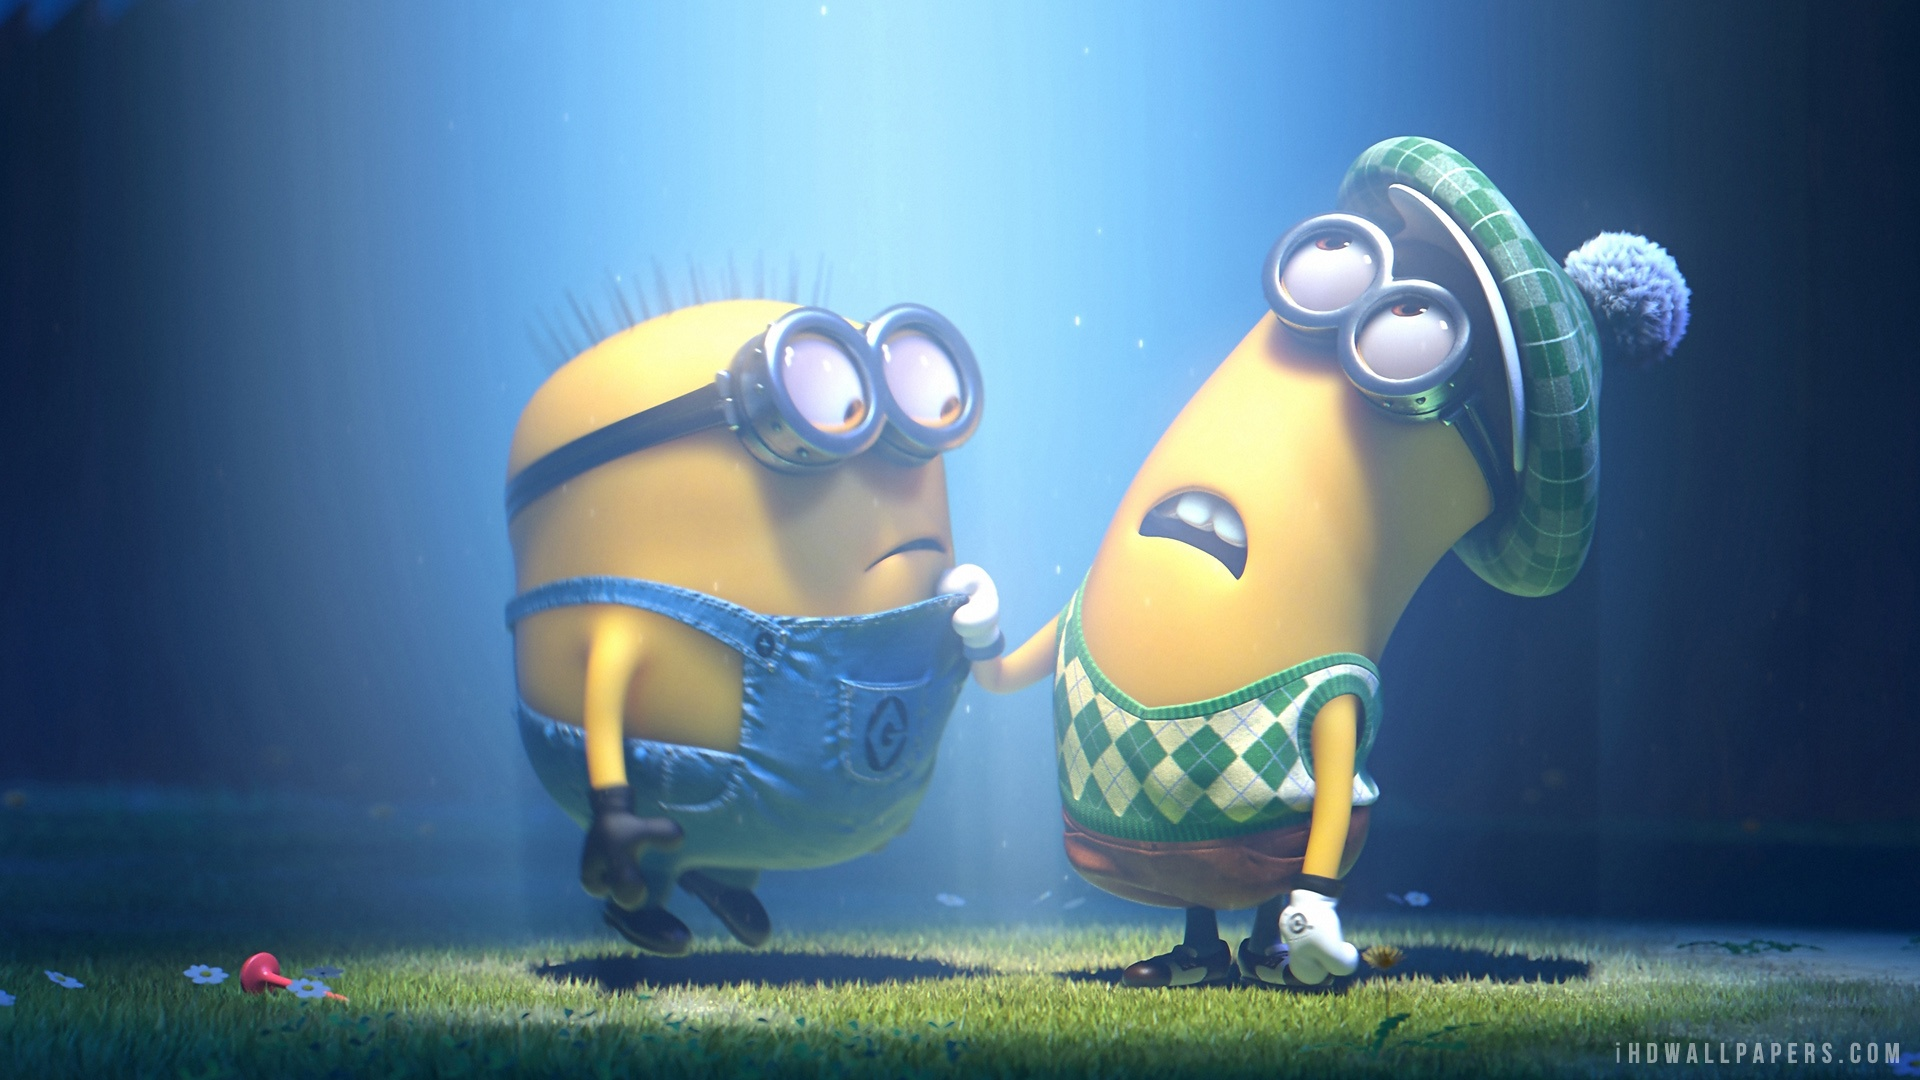 Minions Despicable Me 2 HD Wallpaper   iHD Wallpapers 1920x1080